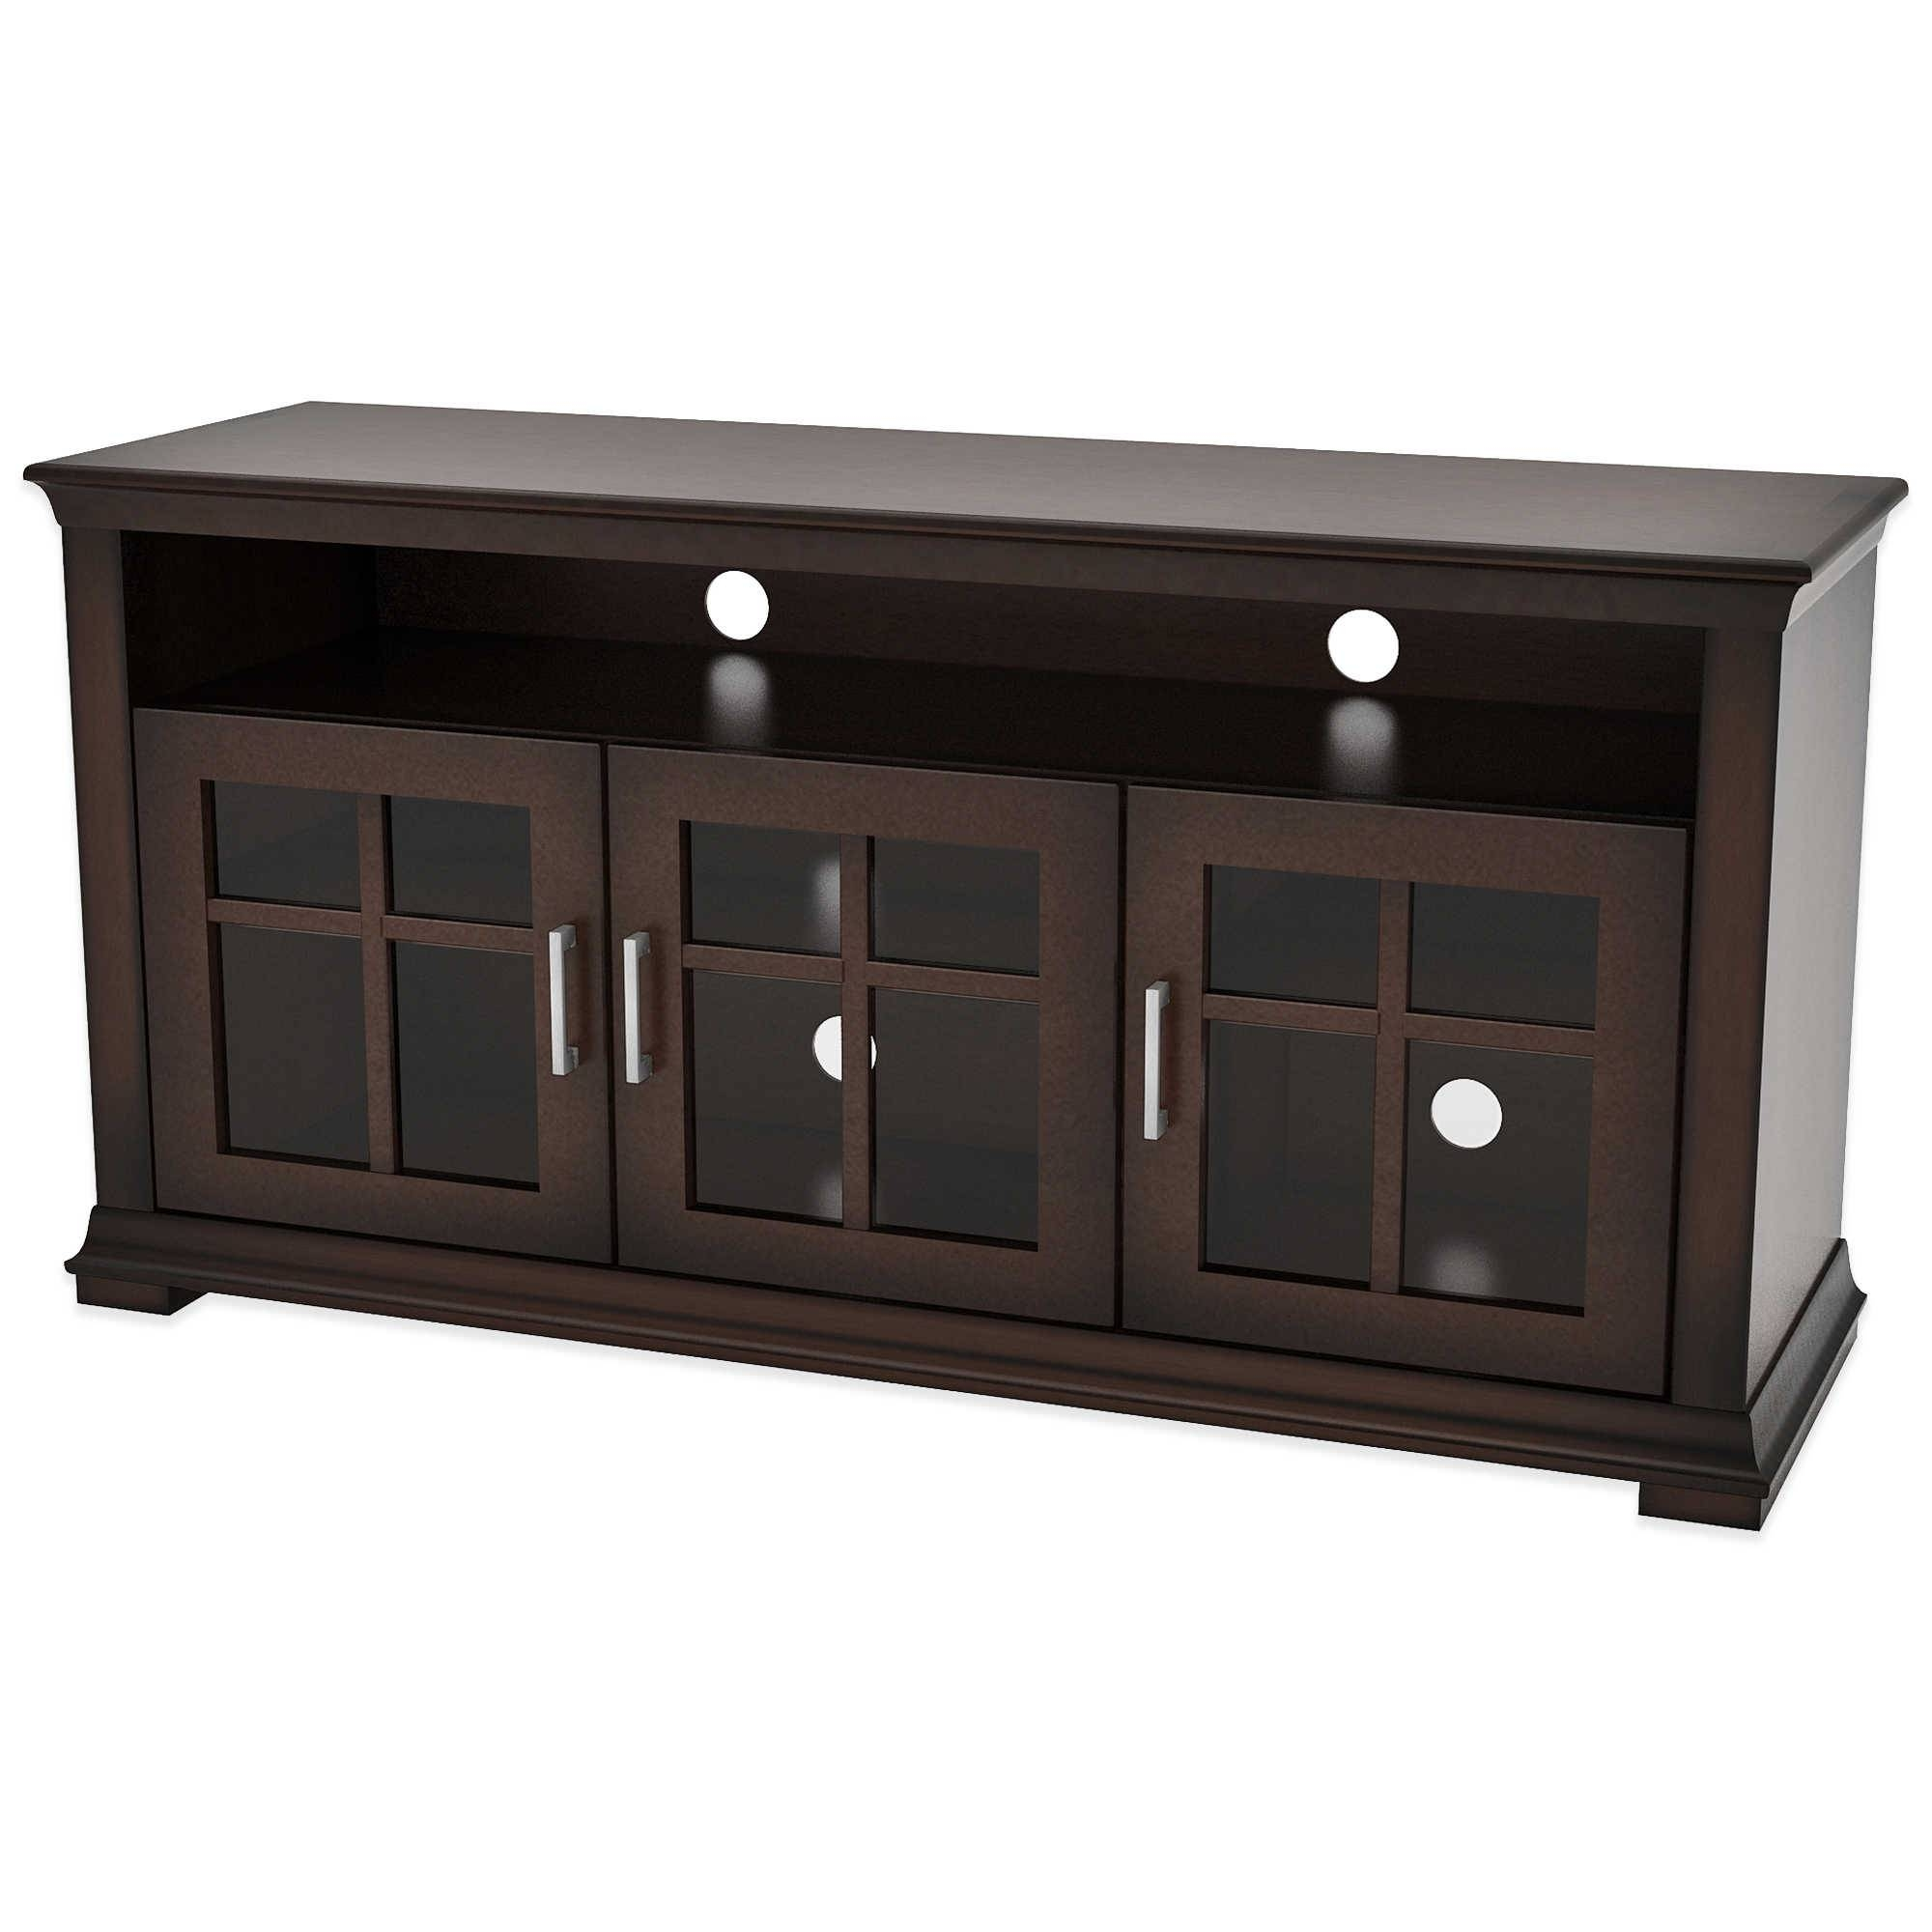 Short Espresso Wood Tv Stand With Triple Glass Doors And Open With Regard To Wooden Tv Stands With Glass Doors (View 10 of 15)